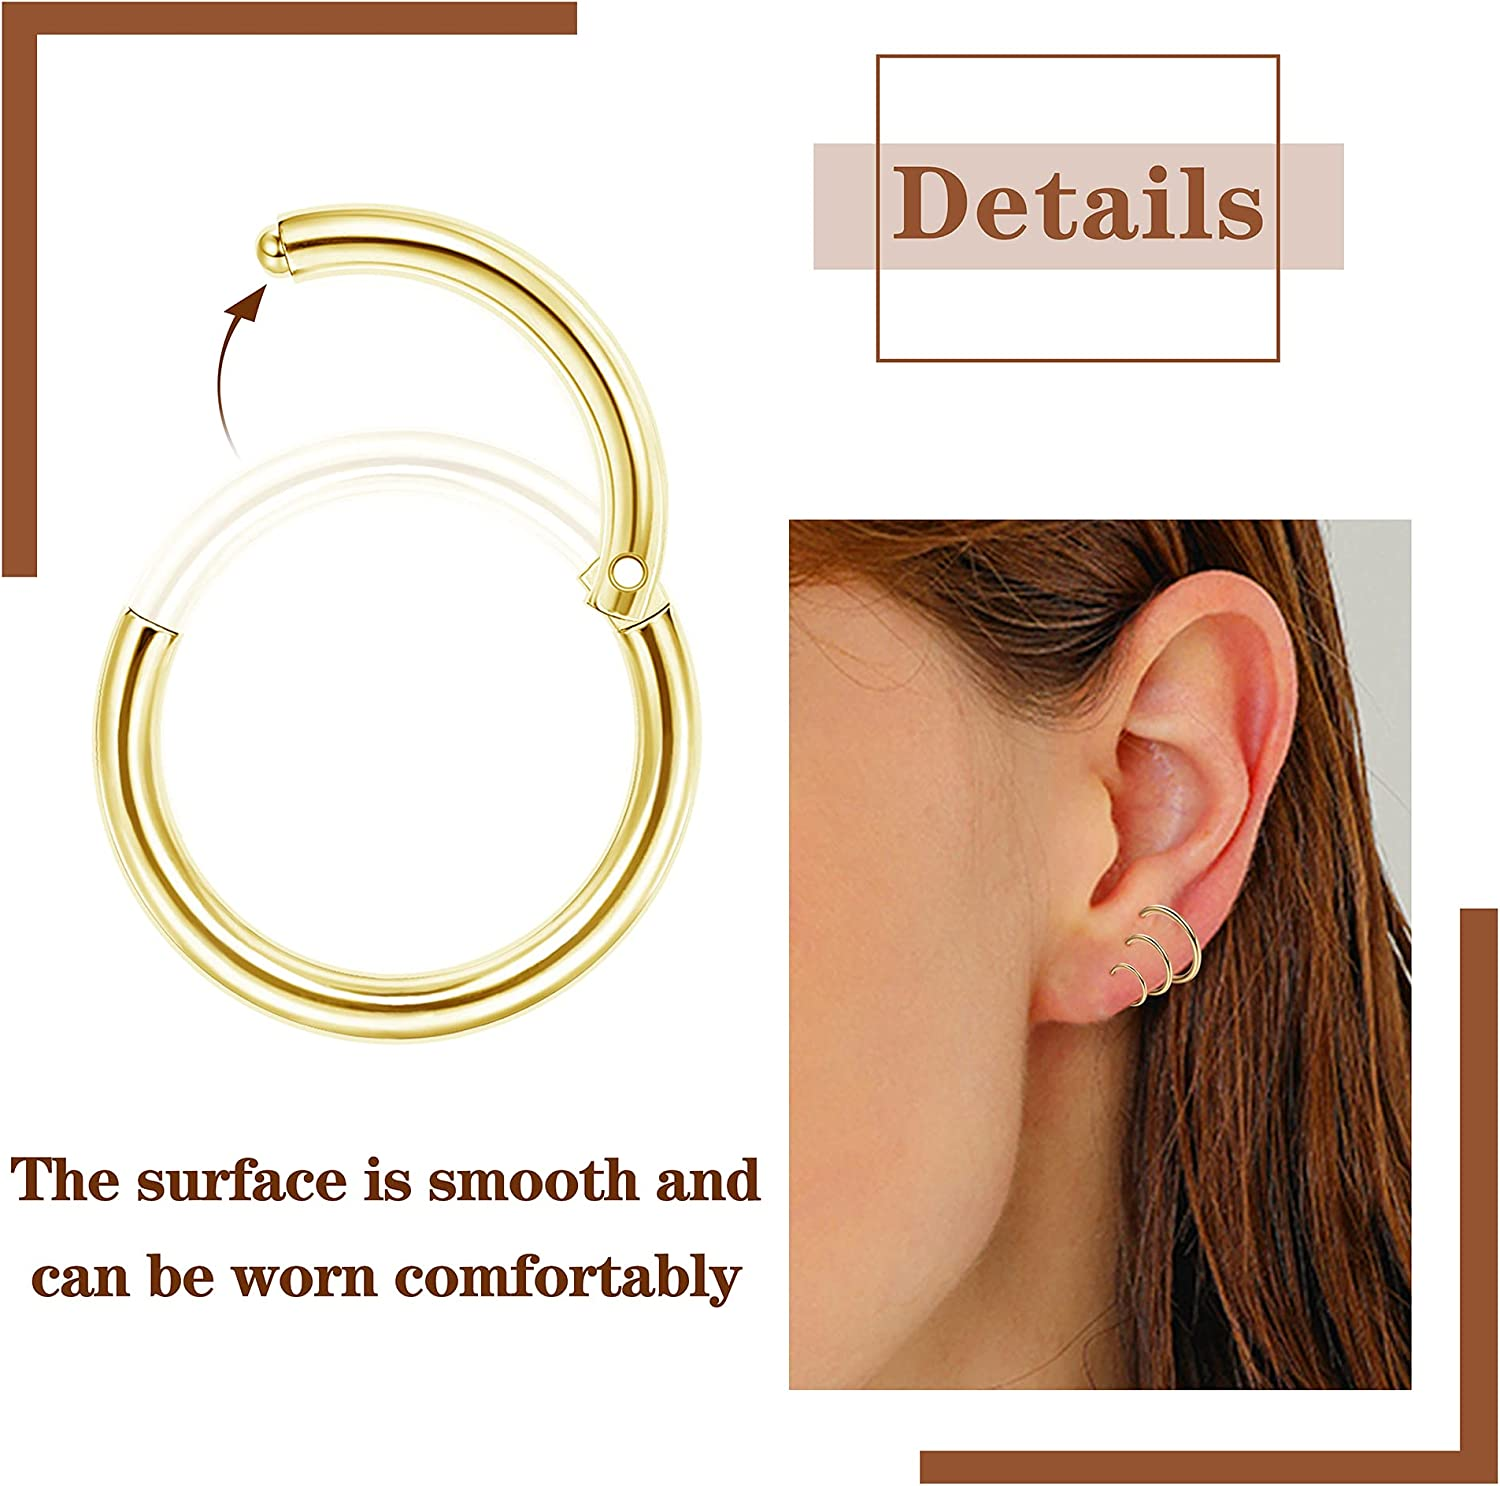 Ubjuliwa 12pcs 16G Rook Piercing Jewelry Eyebrow Rings Stainless Steel Belly Lip Ring Cartilage Hoop Rook Daith Earrings Tragus CZ Body Piercing Curved Barbell